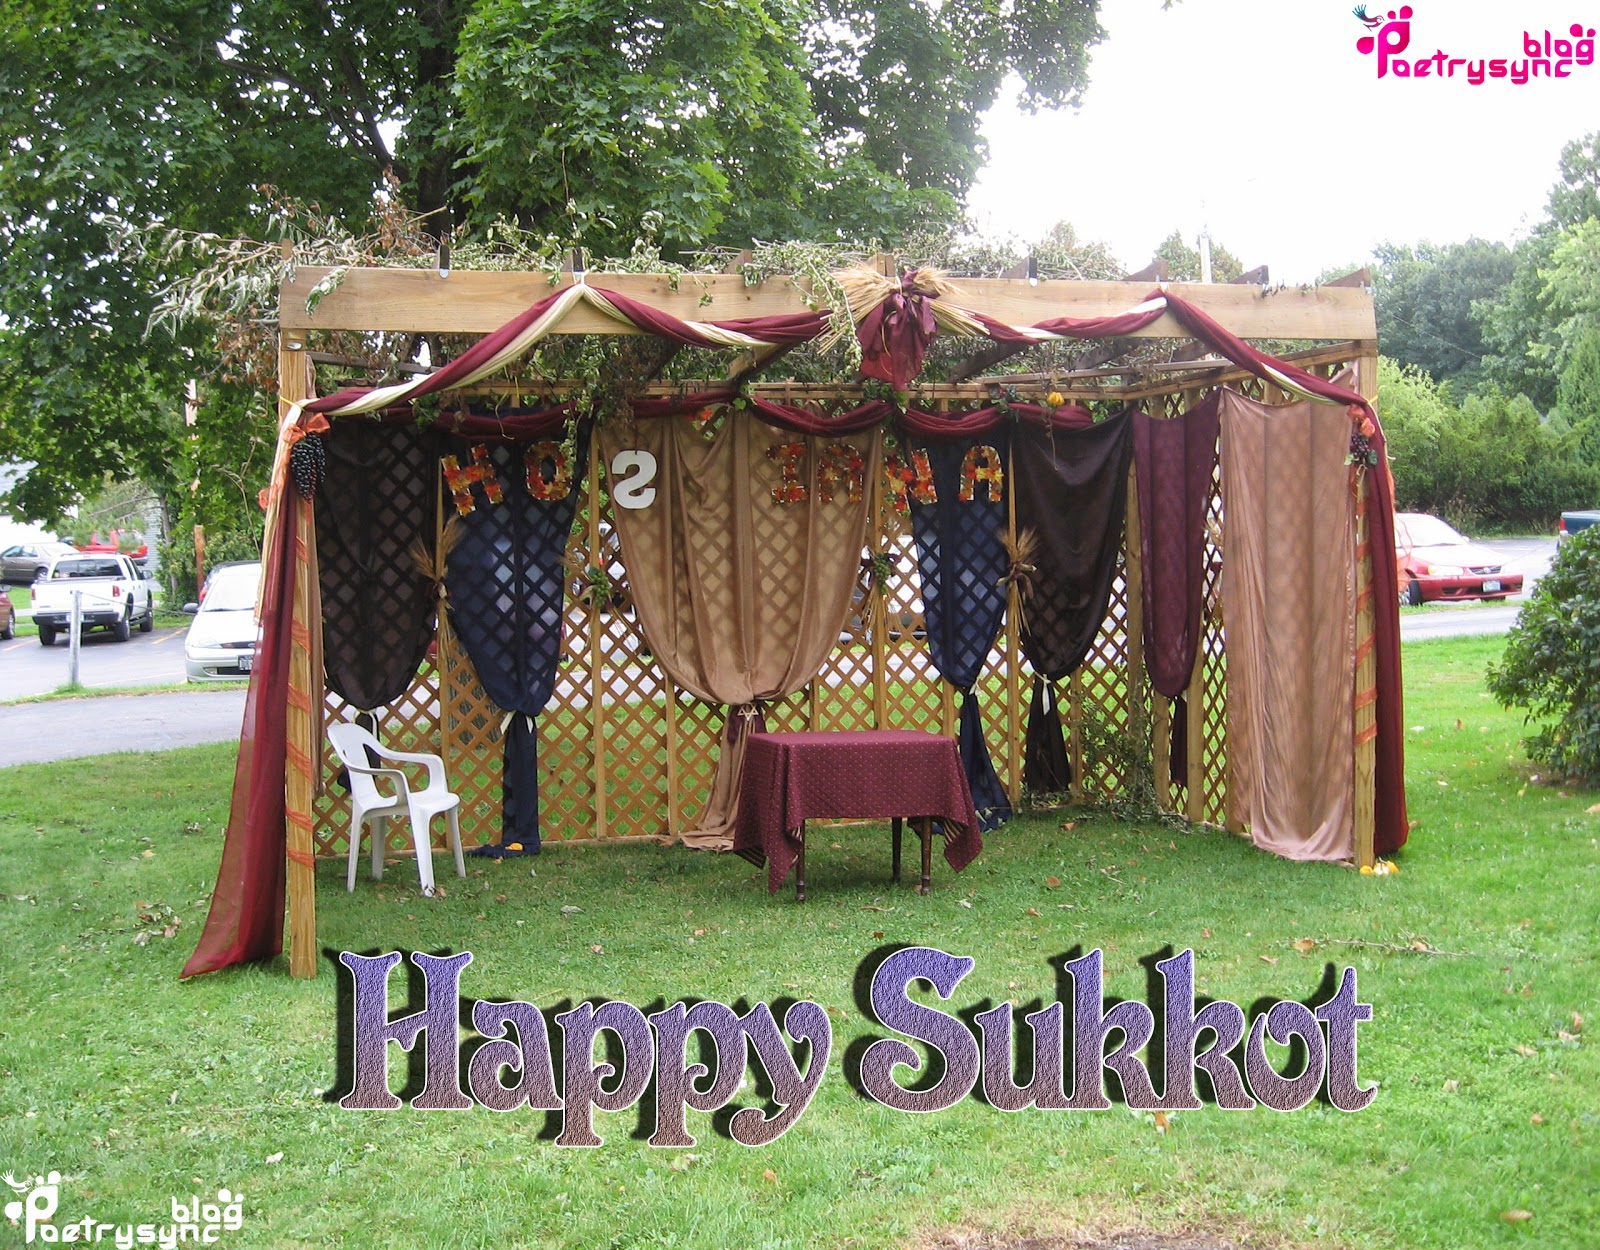 Wishing sukkot festival 2014 greetings with detail information and wishing sukkot festival 2014 greetings with detail information and hd wallpapers poetryquotes m4hsunfo